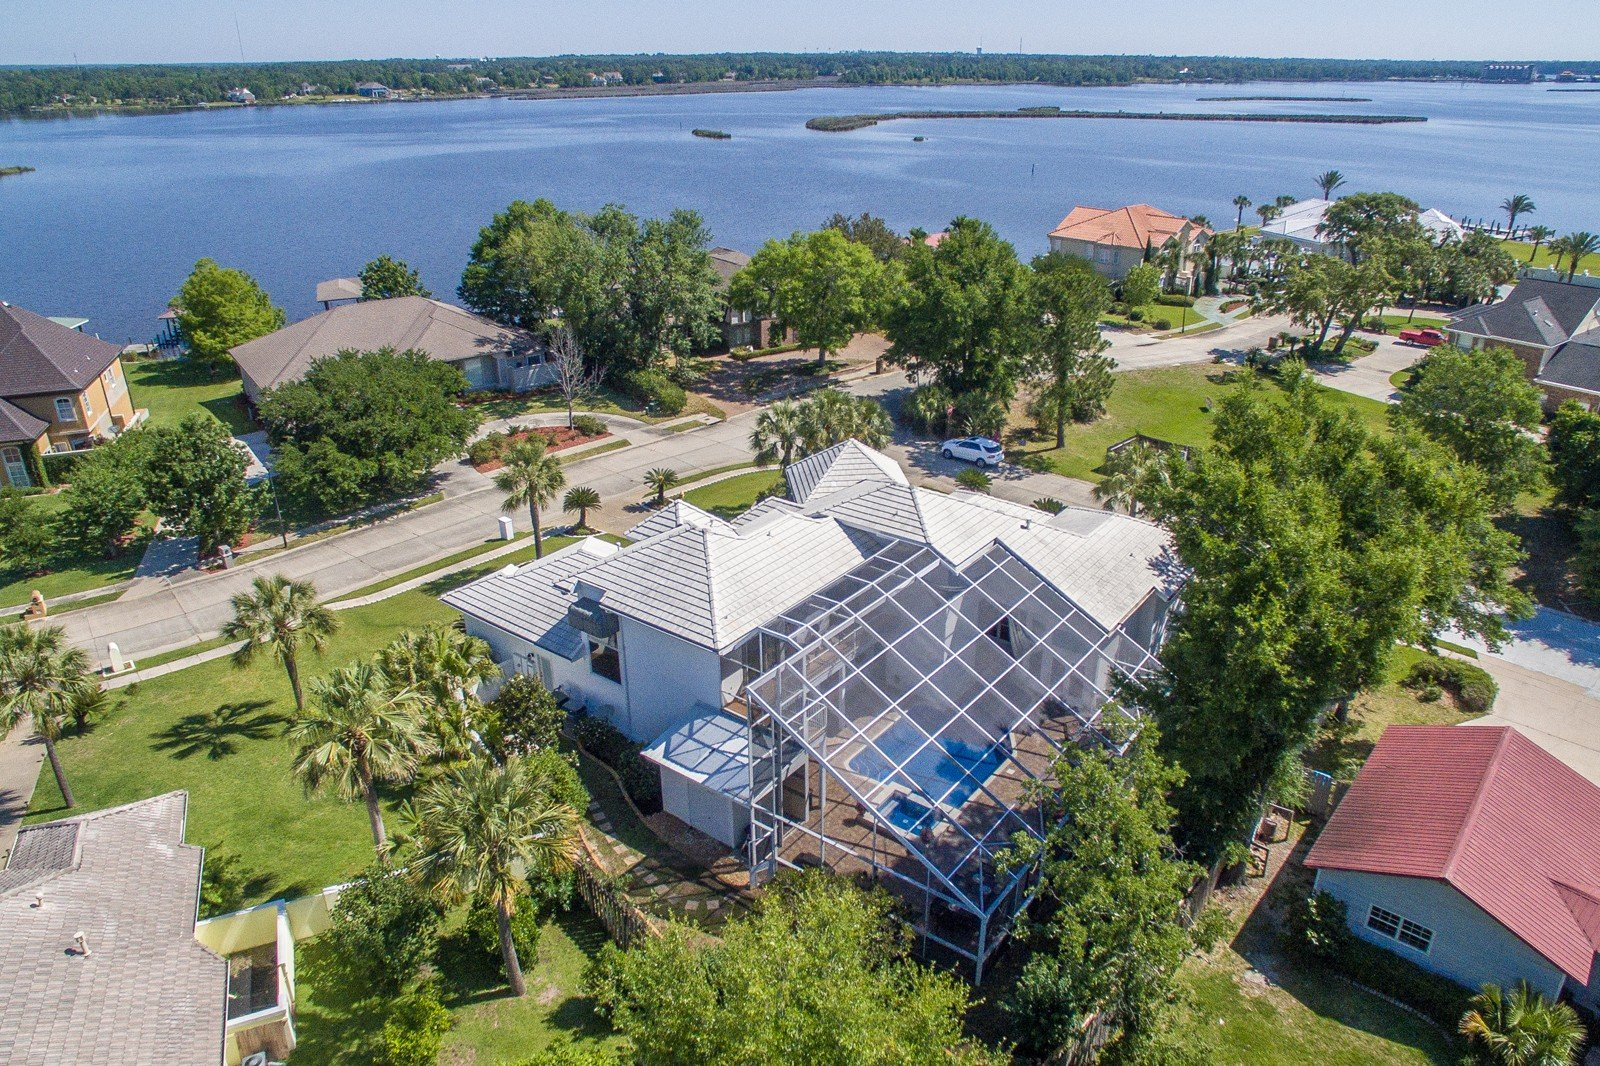 Homes in Biloxi Mississippi